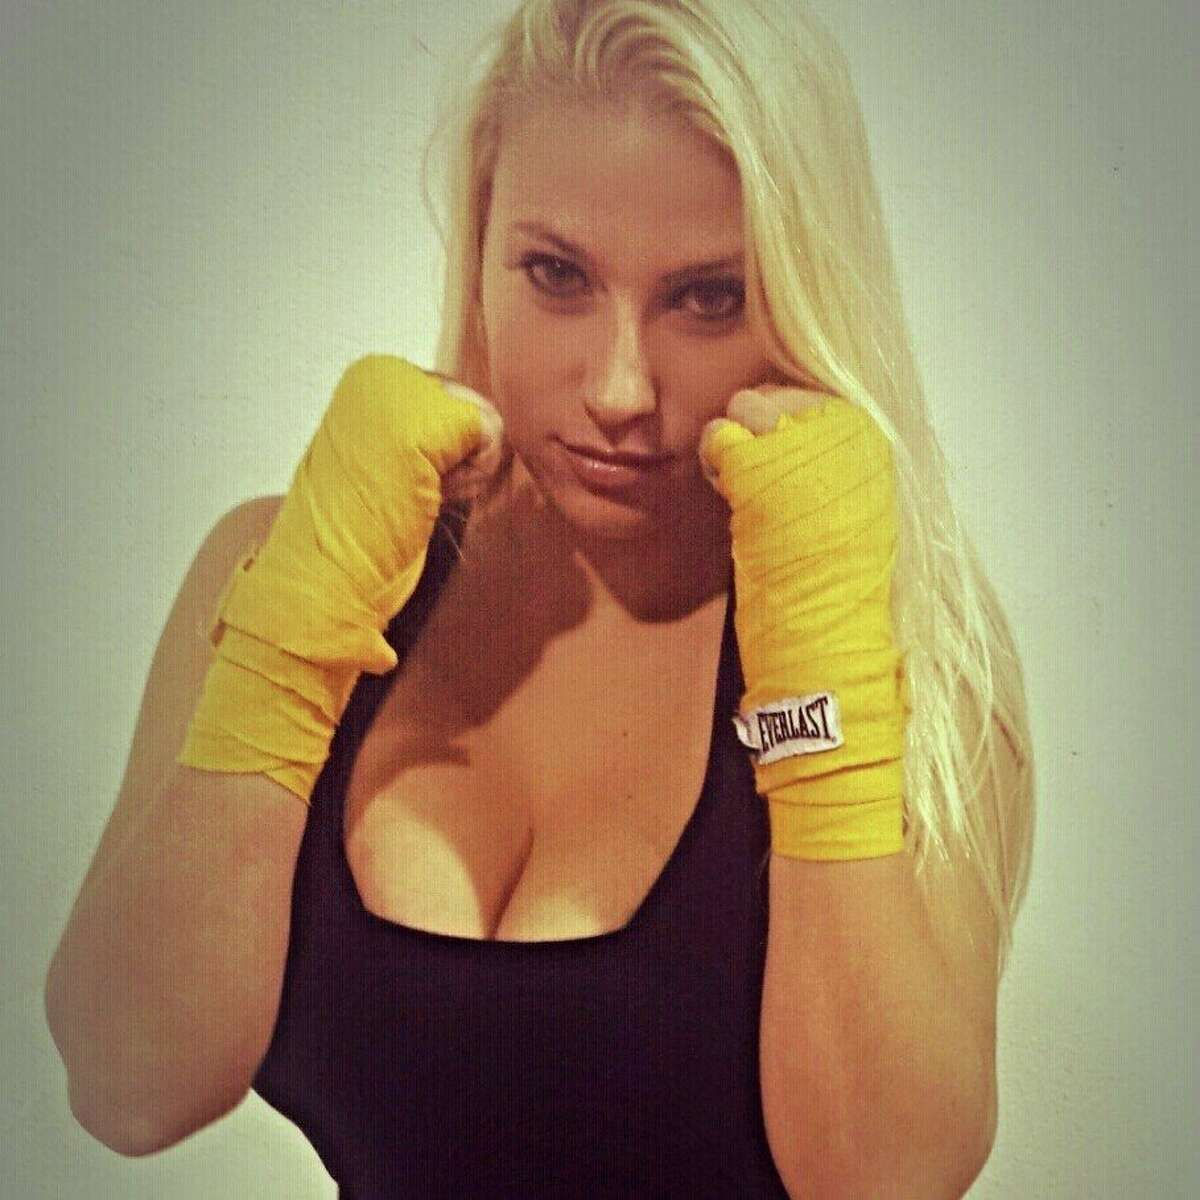 A rising MMA fighter known as